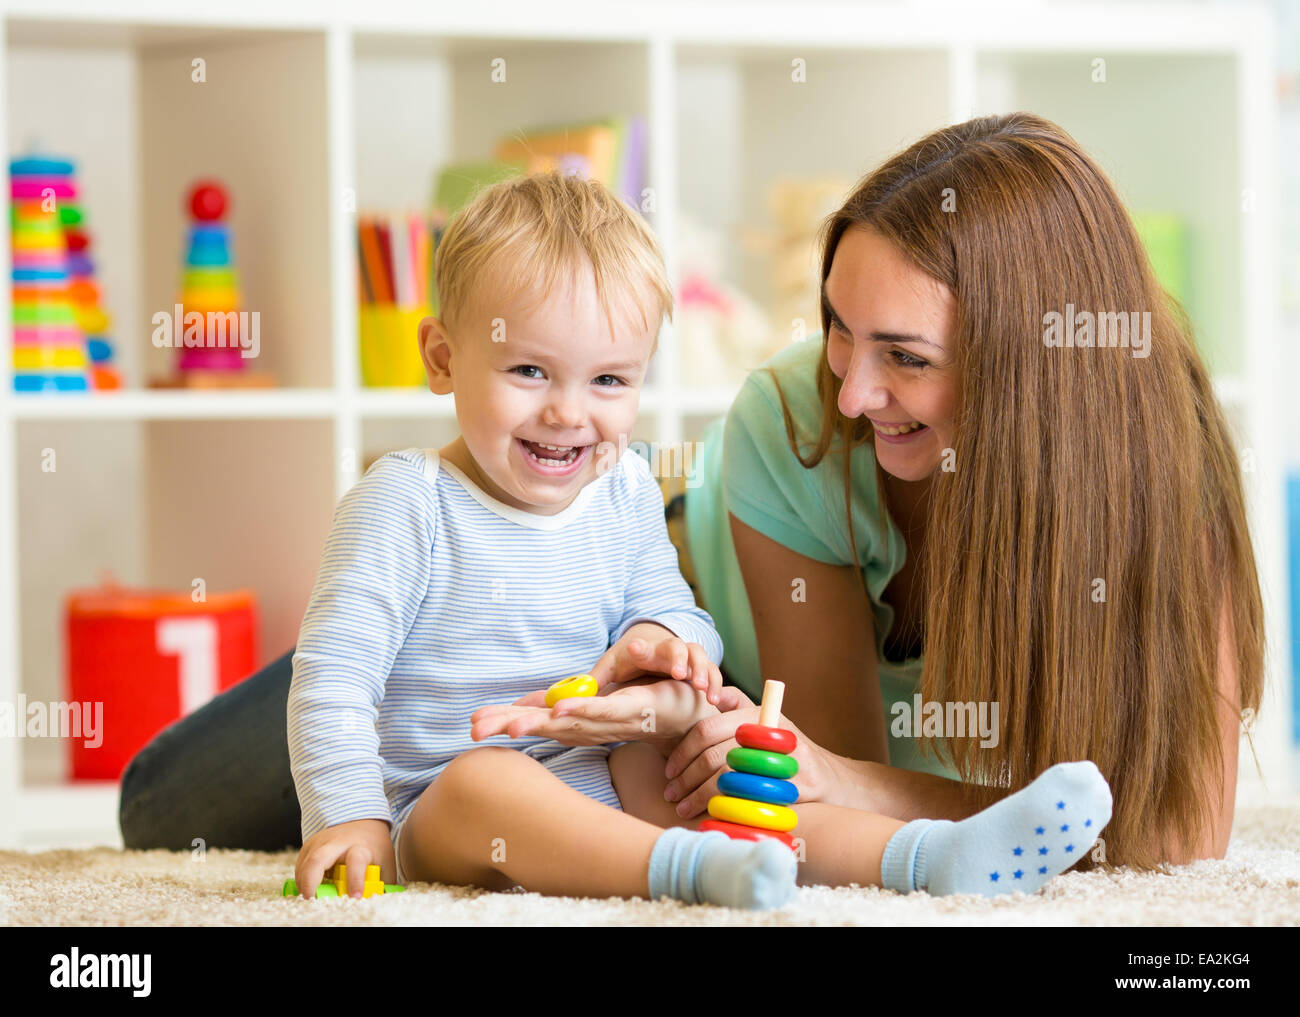 happy mother and child son play together indoor at home - Stock Image